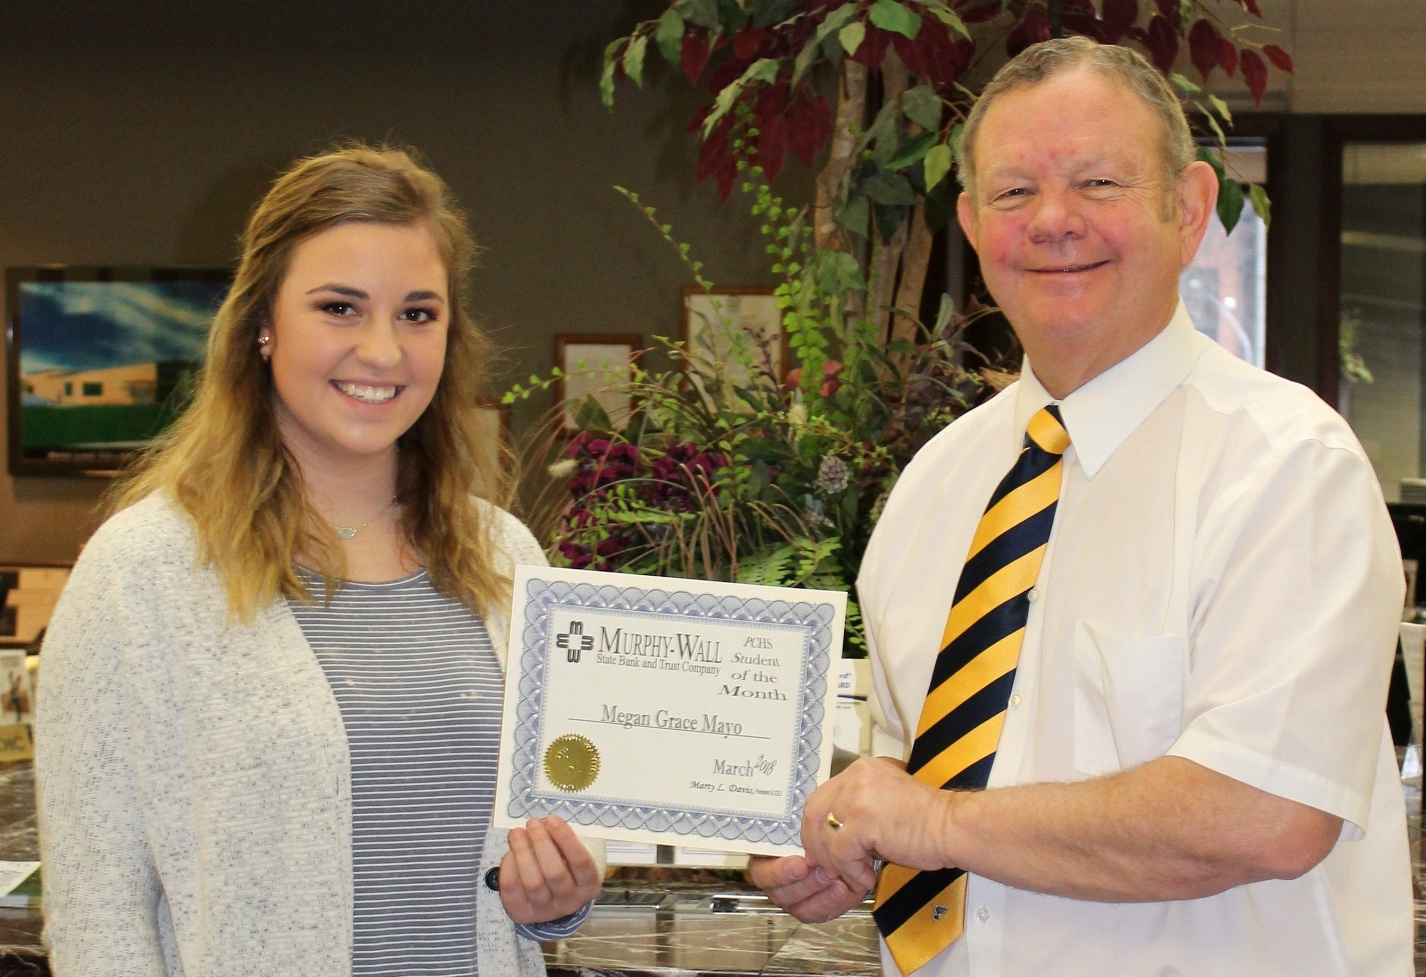 Murphy-Wall State Bank and Trust Company employee Roger Hileman gives PCHS student Megan Mayo the 2018 March Student of the Month award